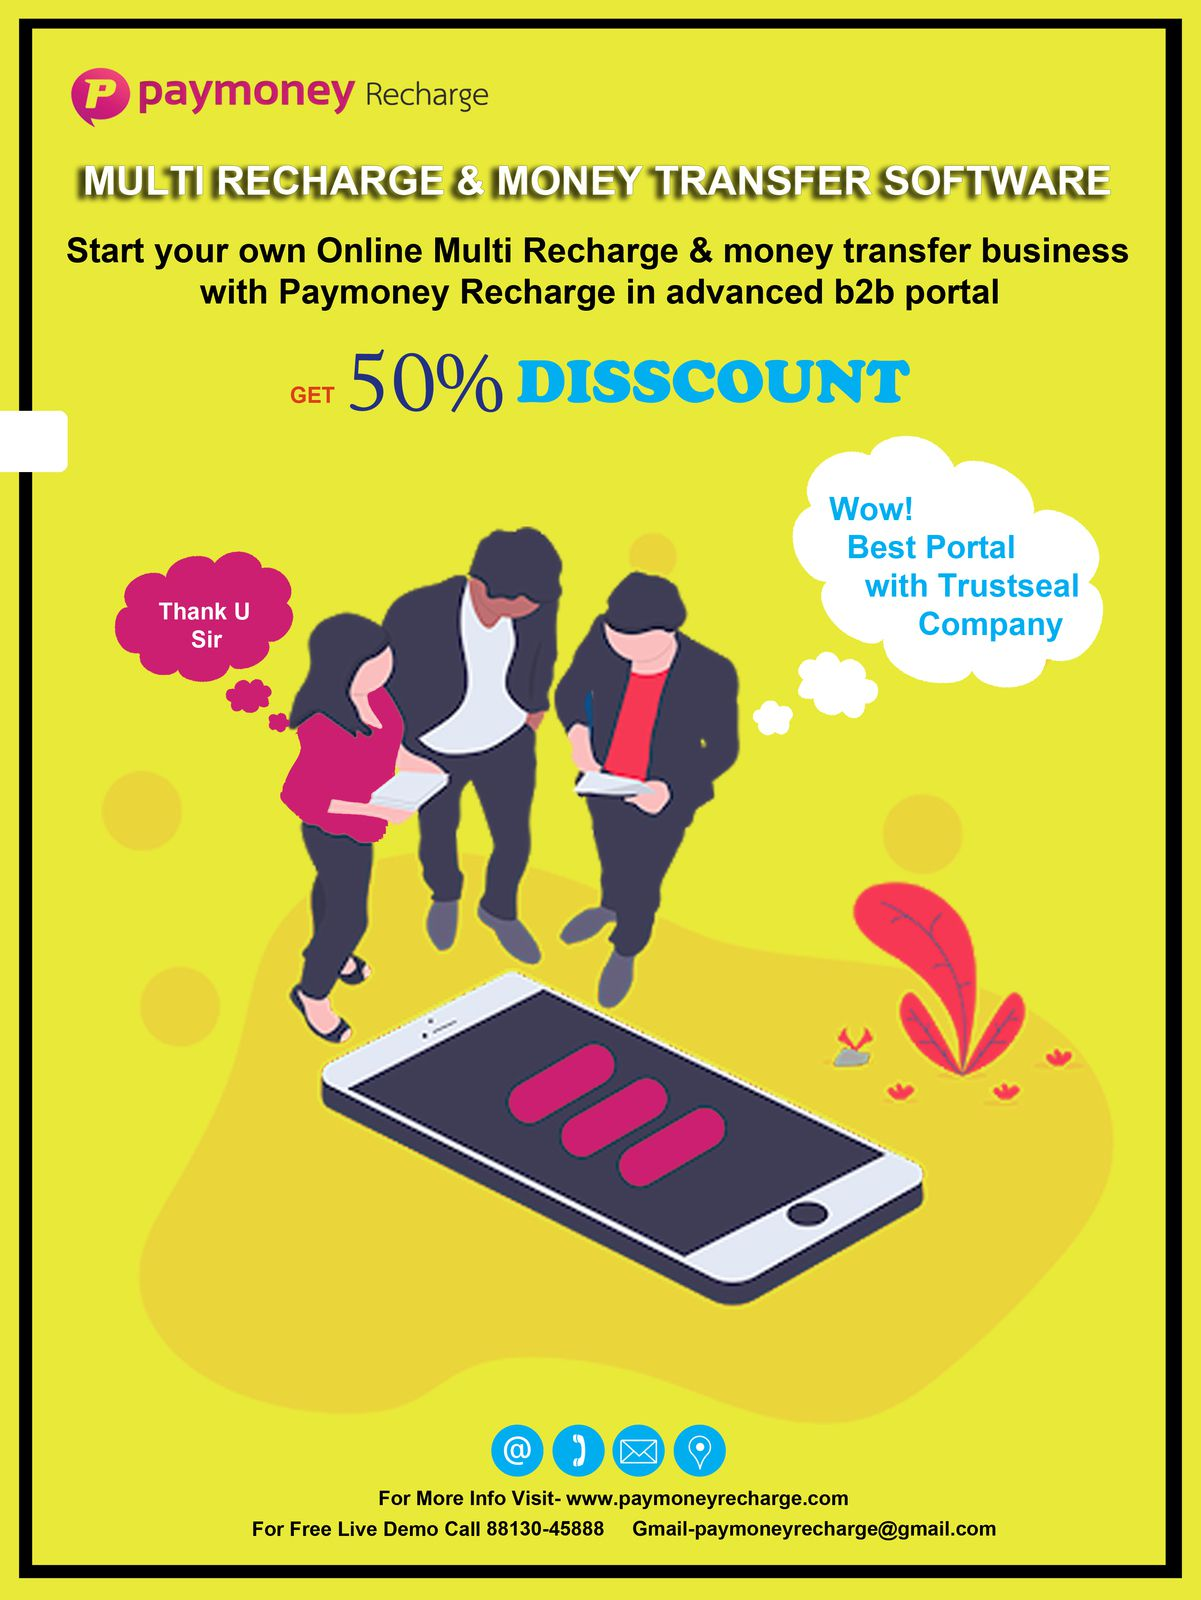 Paymoney Recharge Provide online B2B multi recharge portal with best features and 24*7 Hours Support With 1 Free Recharge API. And Android App Published in Play store With your Brand Name.